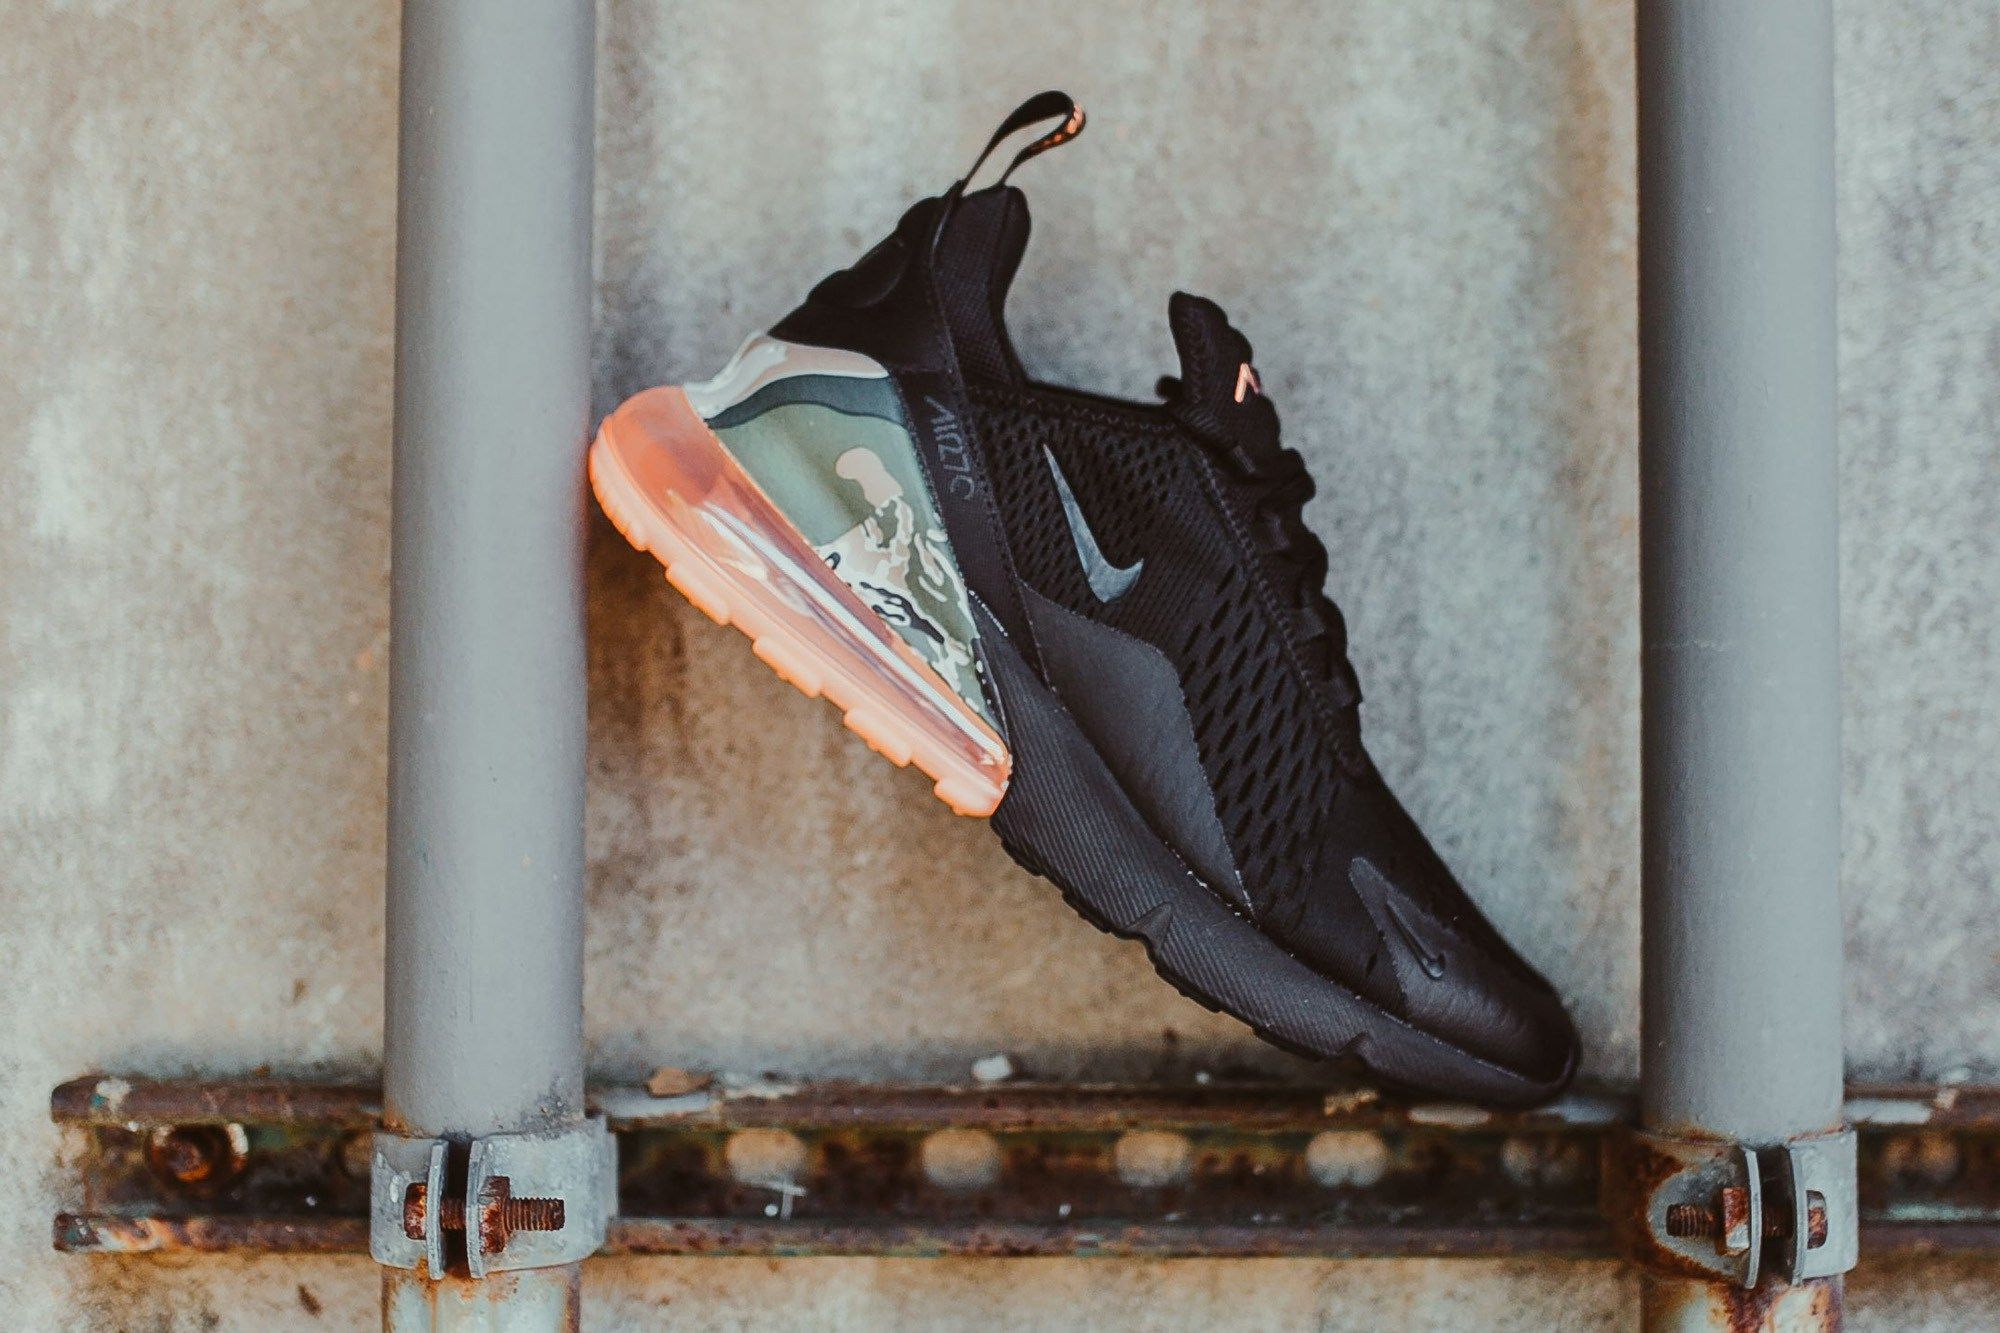 Nike Air Max 270 Available In Coral Camo Air Max 270 Sneakers Shoes Too Big